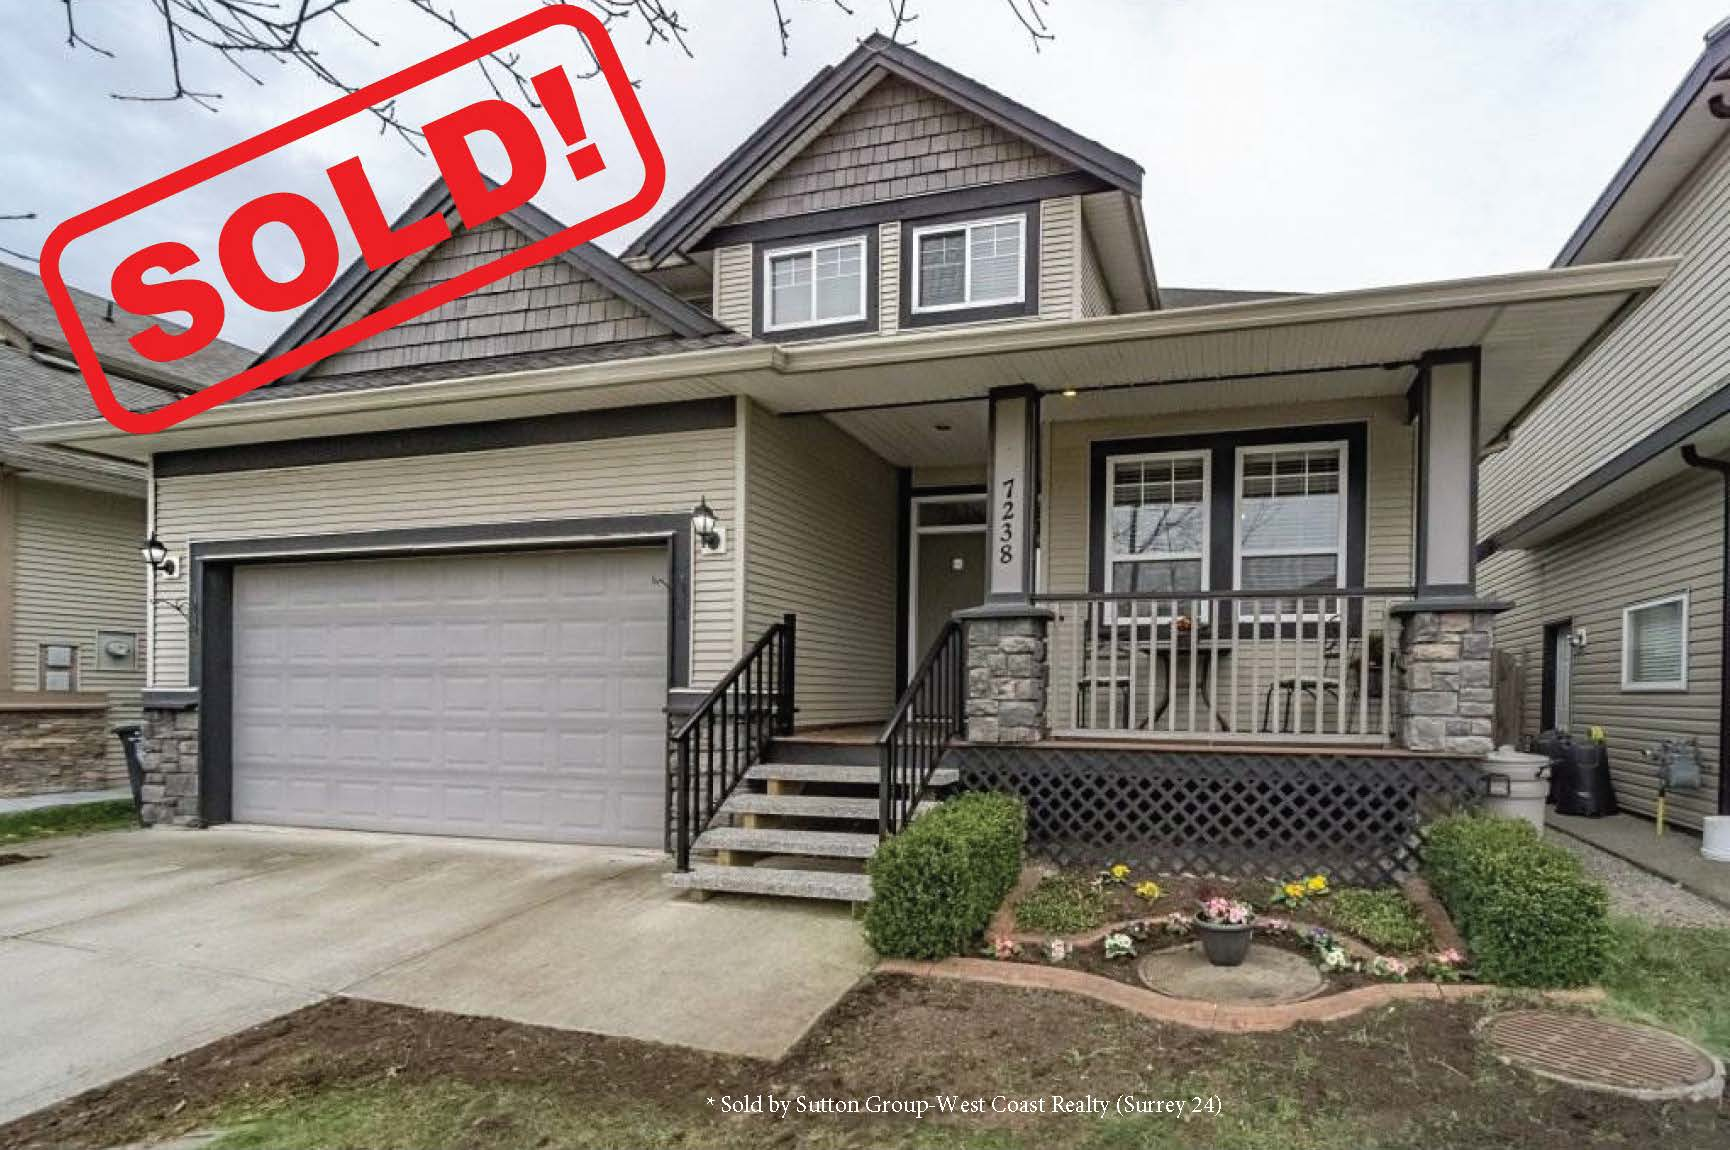 7238 196 Street   sold for: $960,000  6 Bed | 4 Bath | 3,080 SF